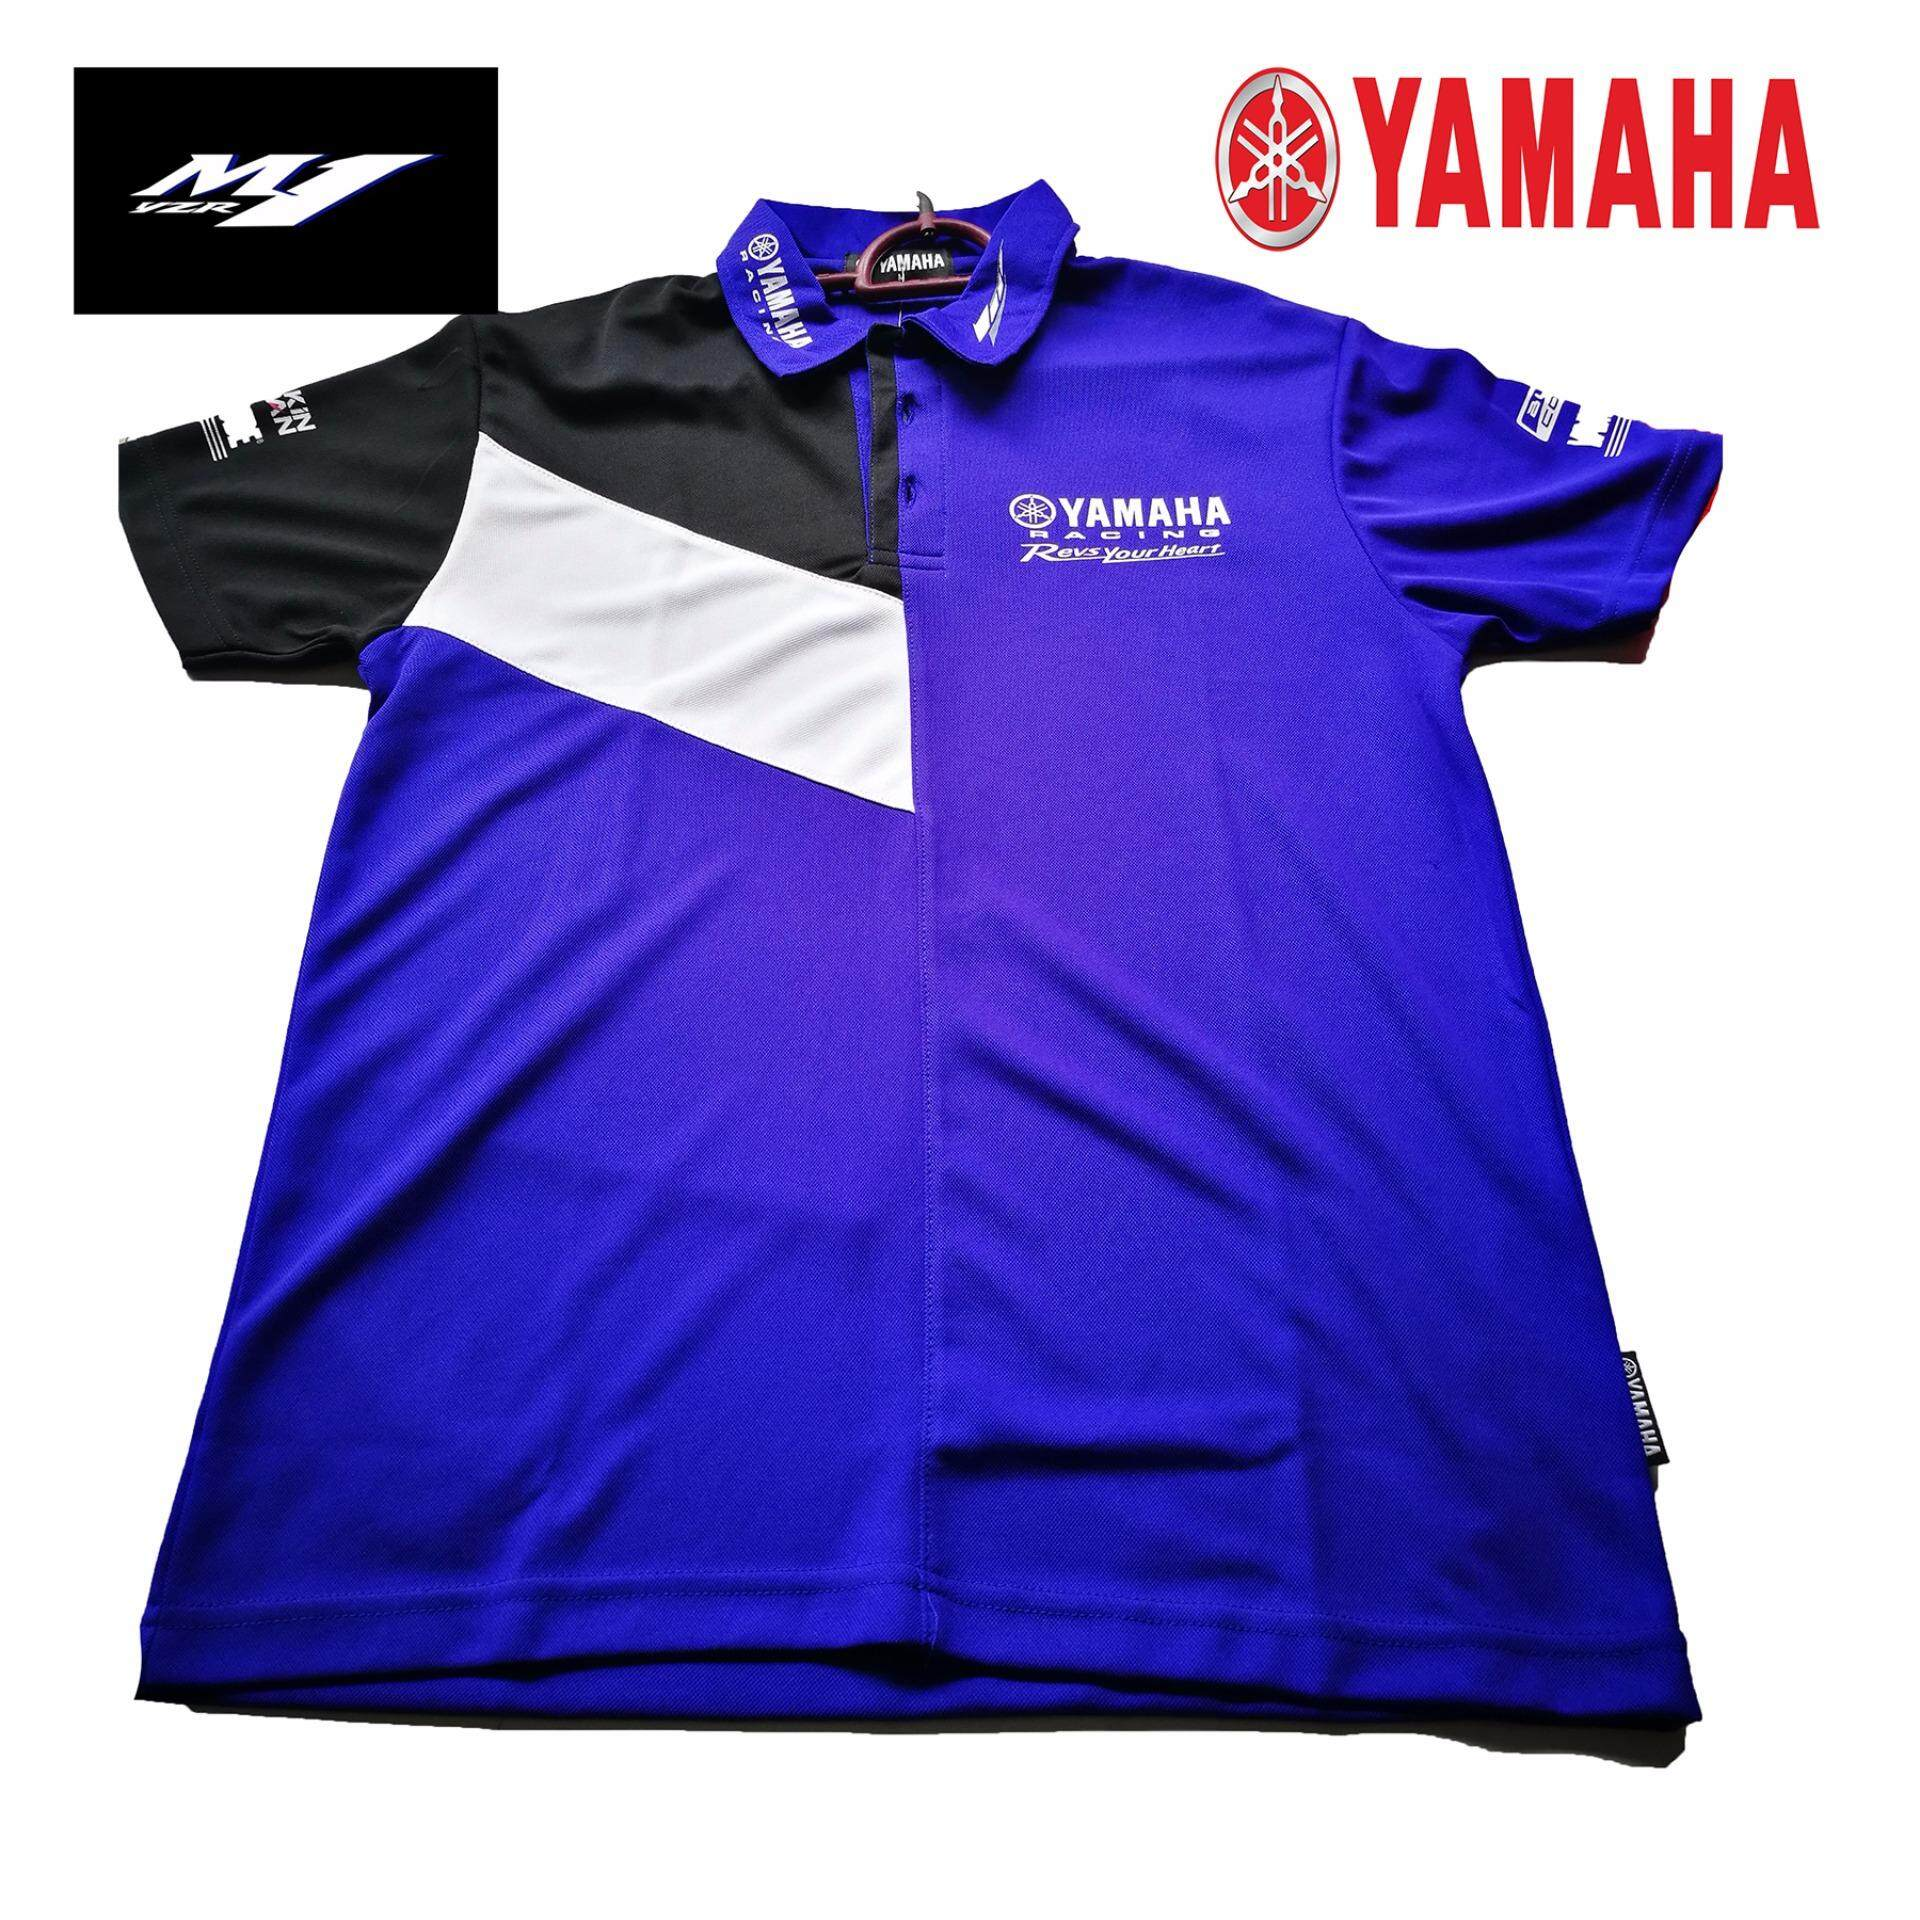 Black yamaha t shirt - Black Yamaha T Shirt 32